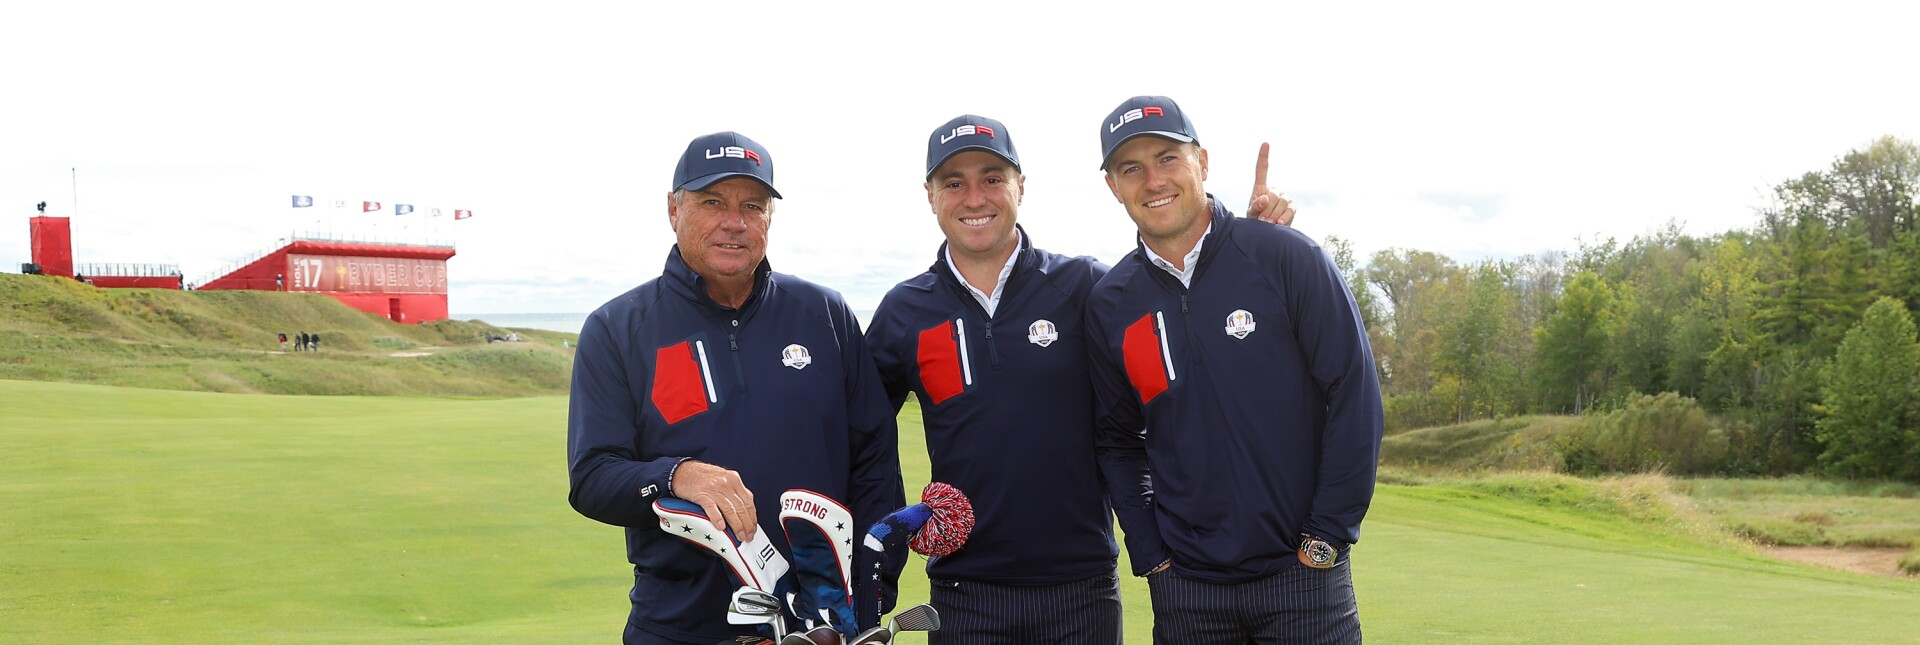 43rd Ryder Cup - Previews